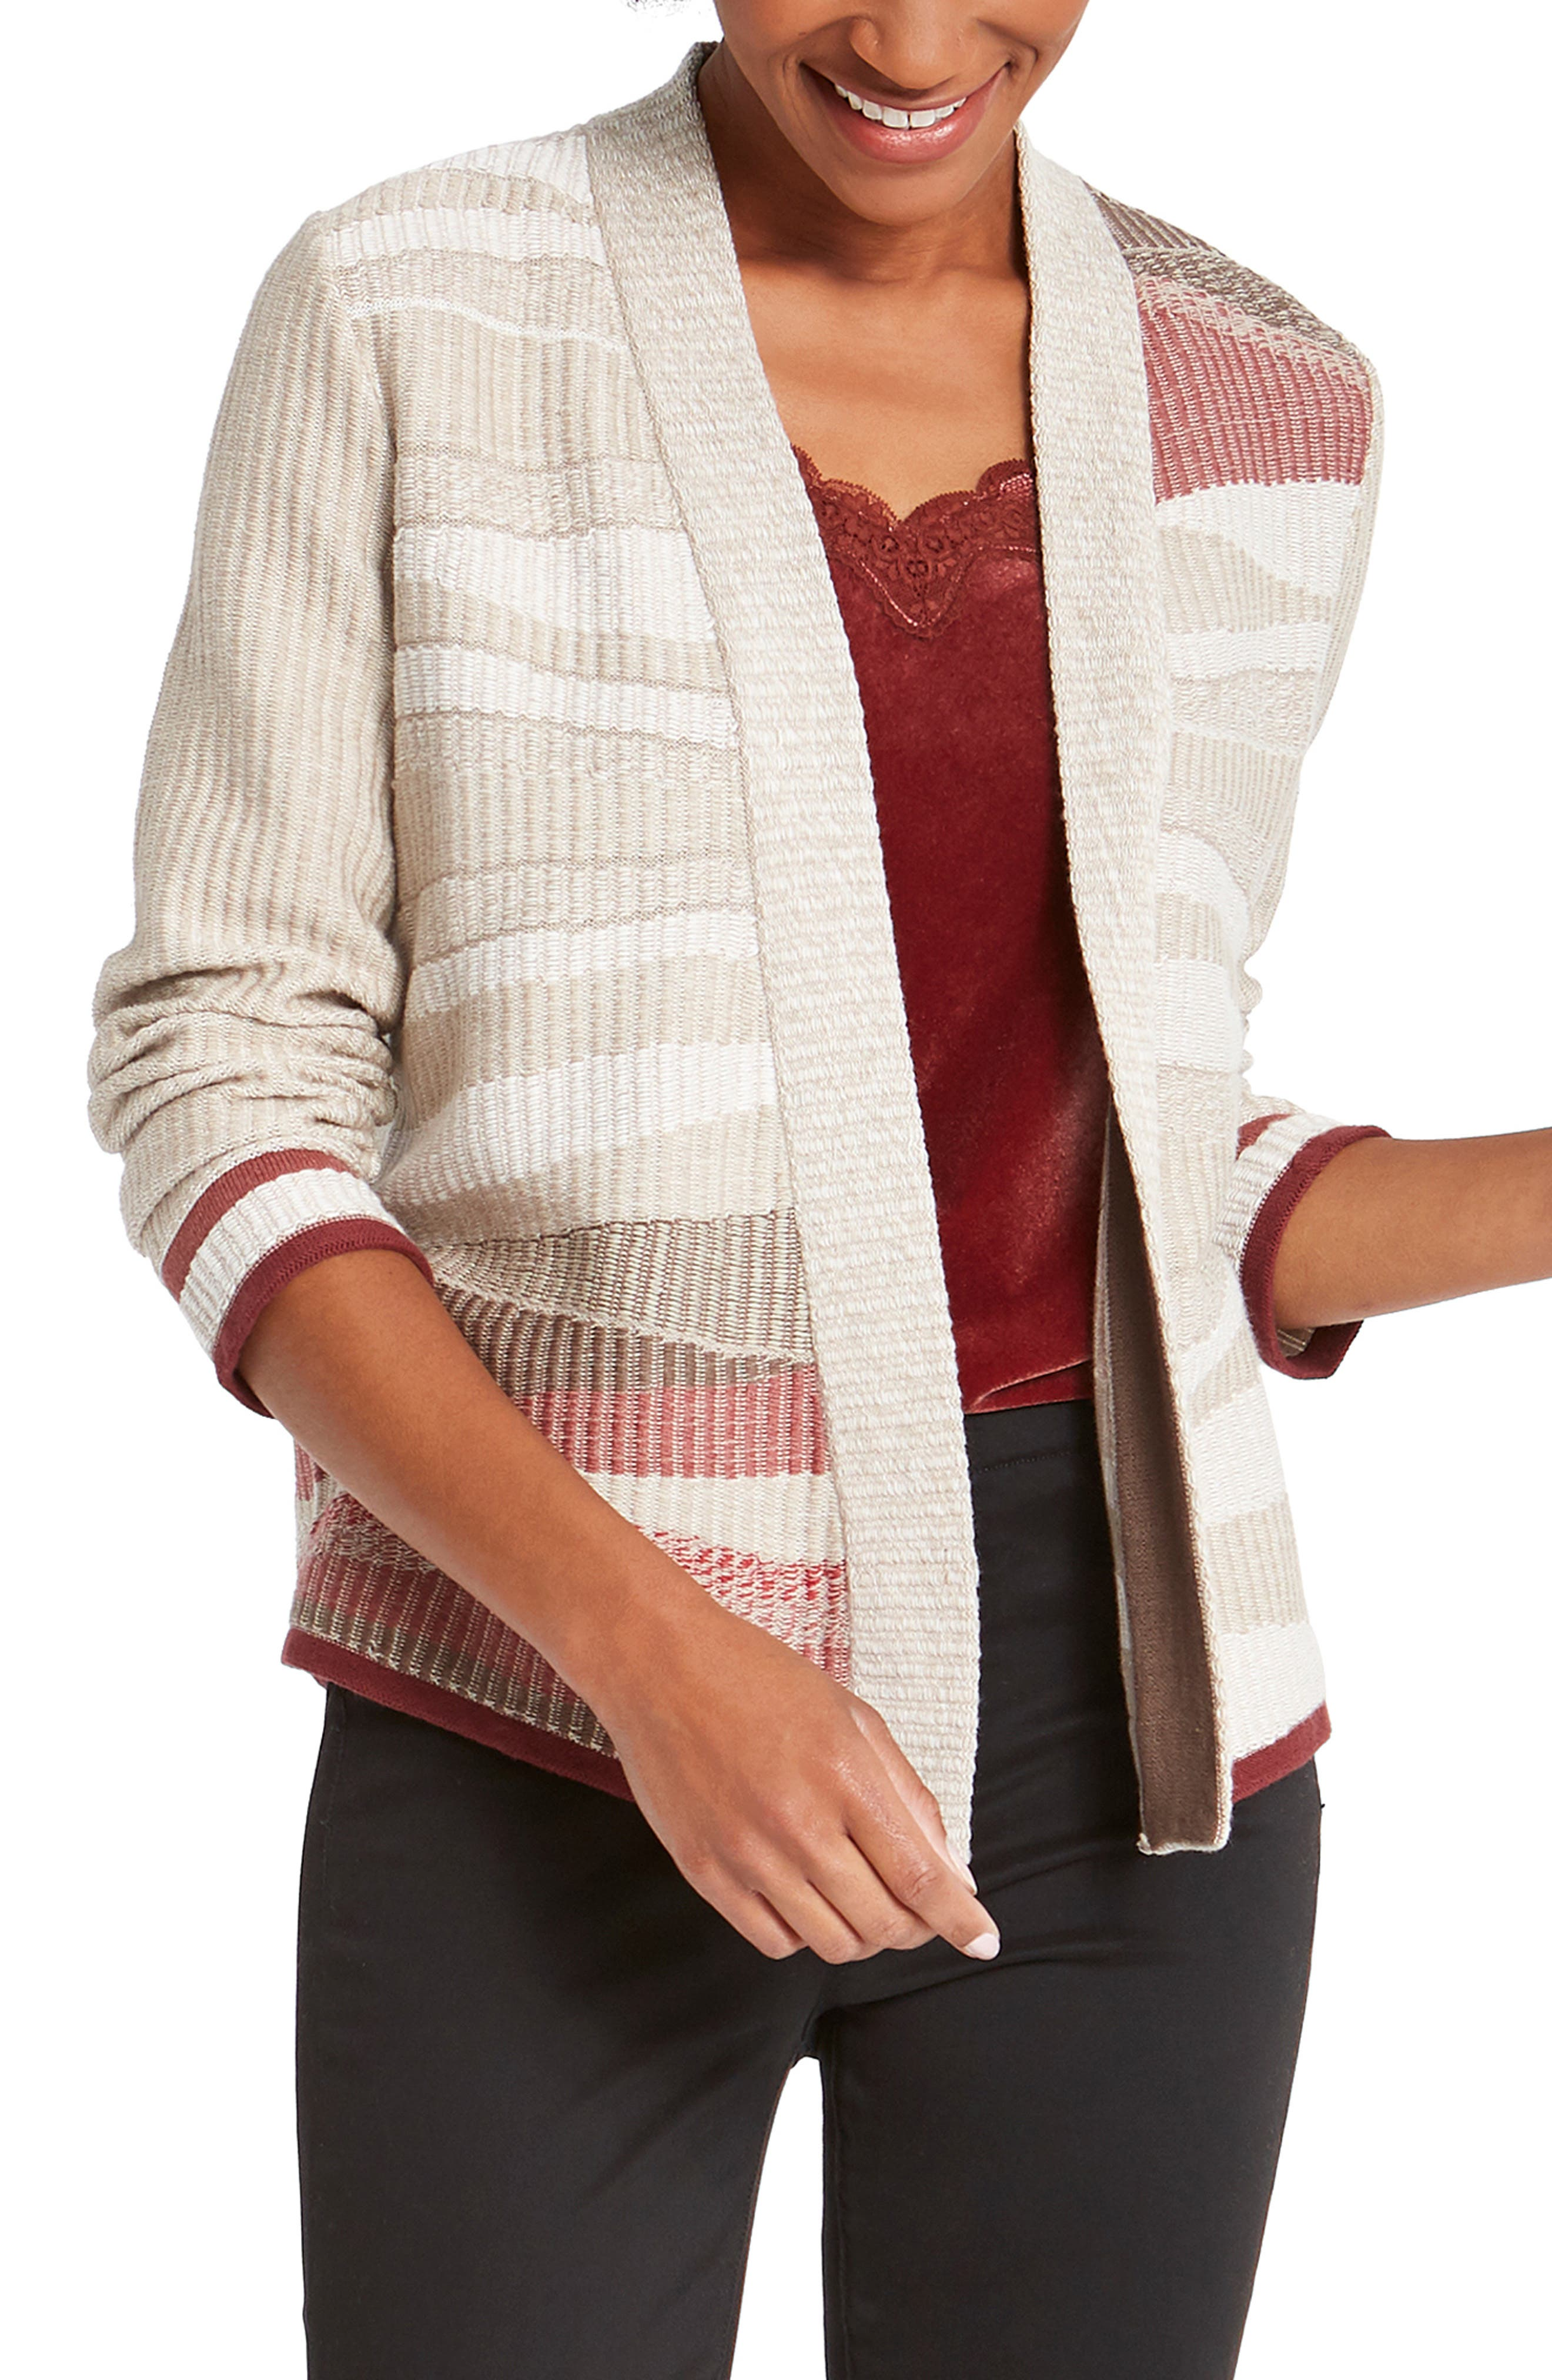 Jacquard stripes like air currents bring a fresh look to this open-front, cotton-blend cardigan perfect for tossing on when the weather turns crisp. Style Name: Nic+Zoe Fall Air Open Front Cardigan (Regular & Petite). Style Number: 6098304. Available in stores.